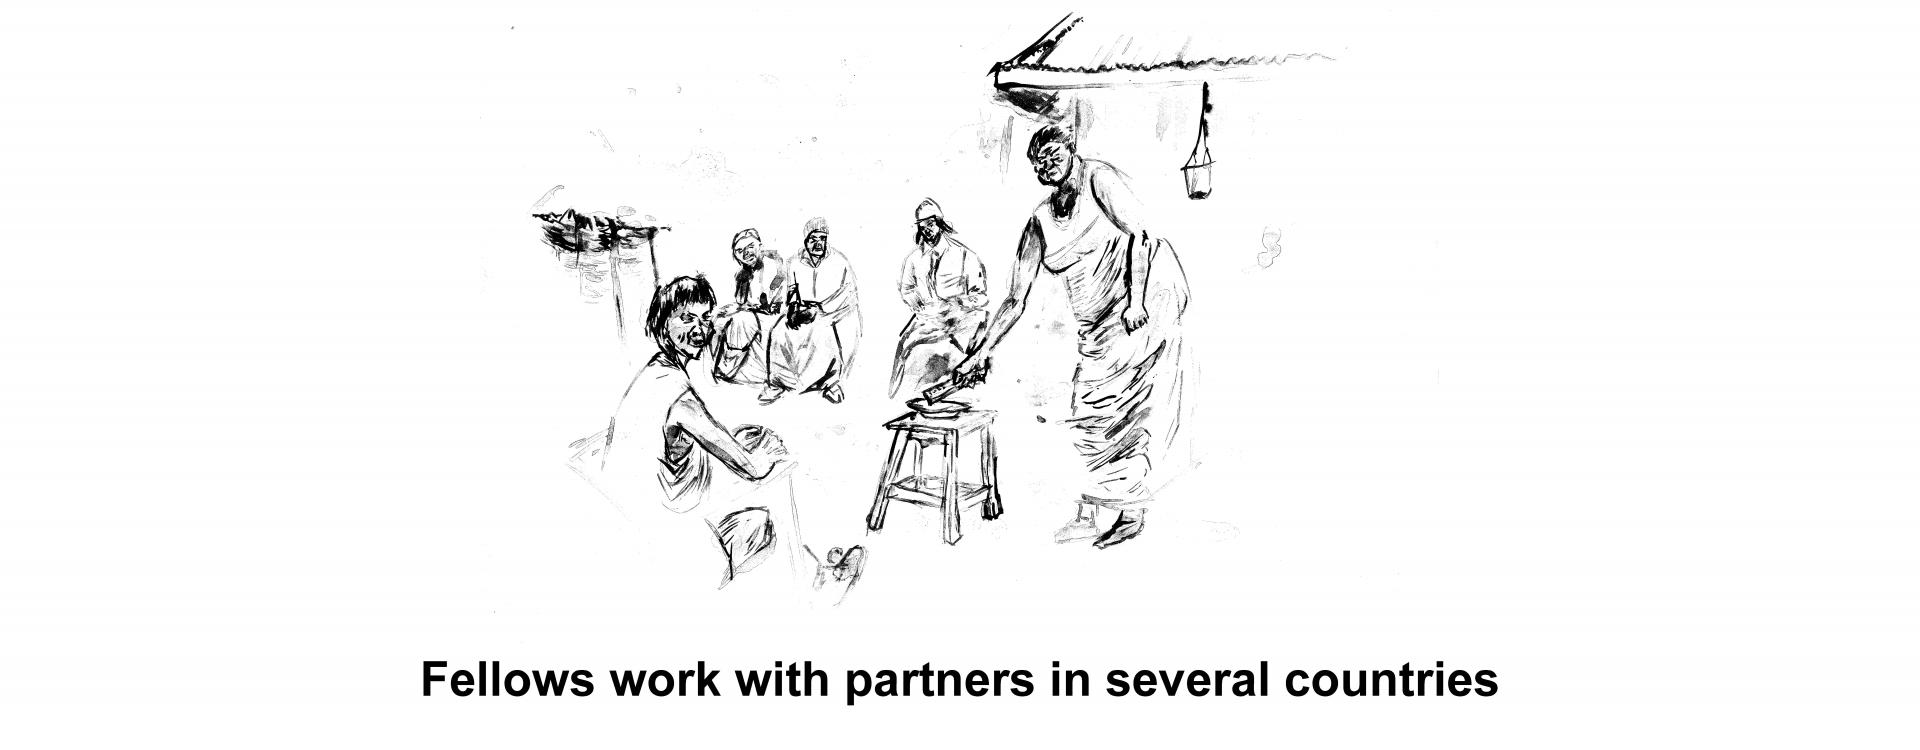 Fellows work with partners in several countries